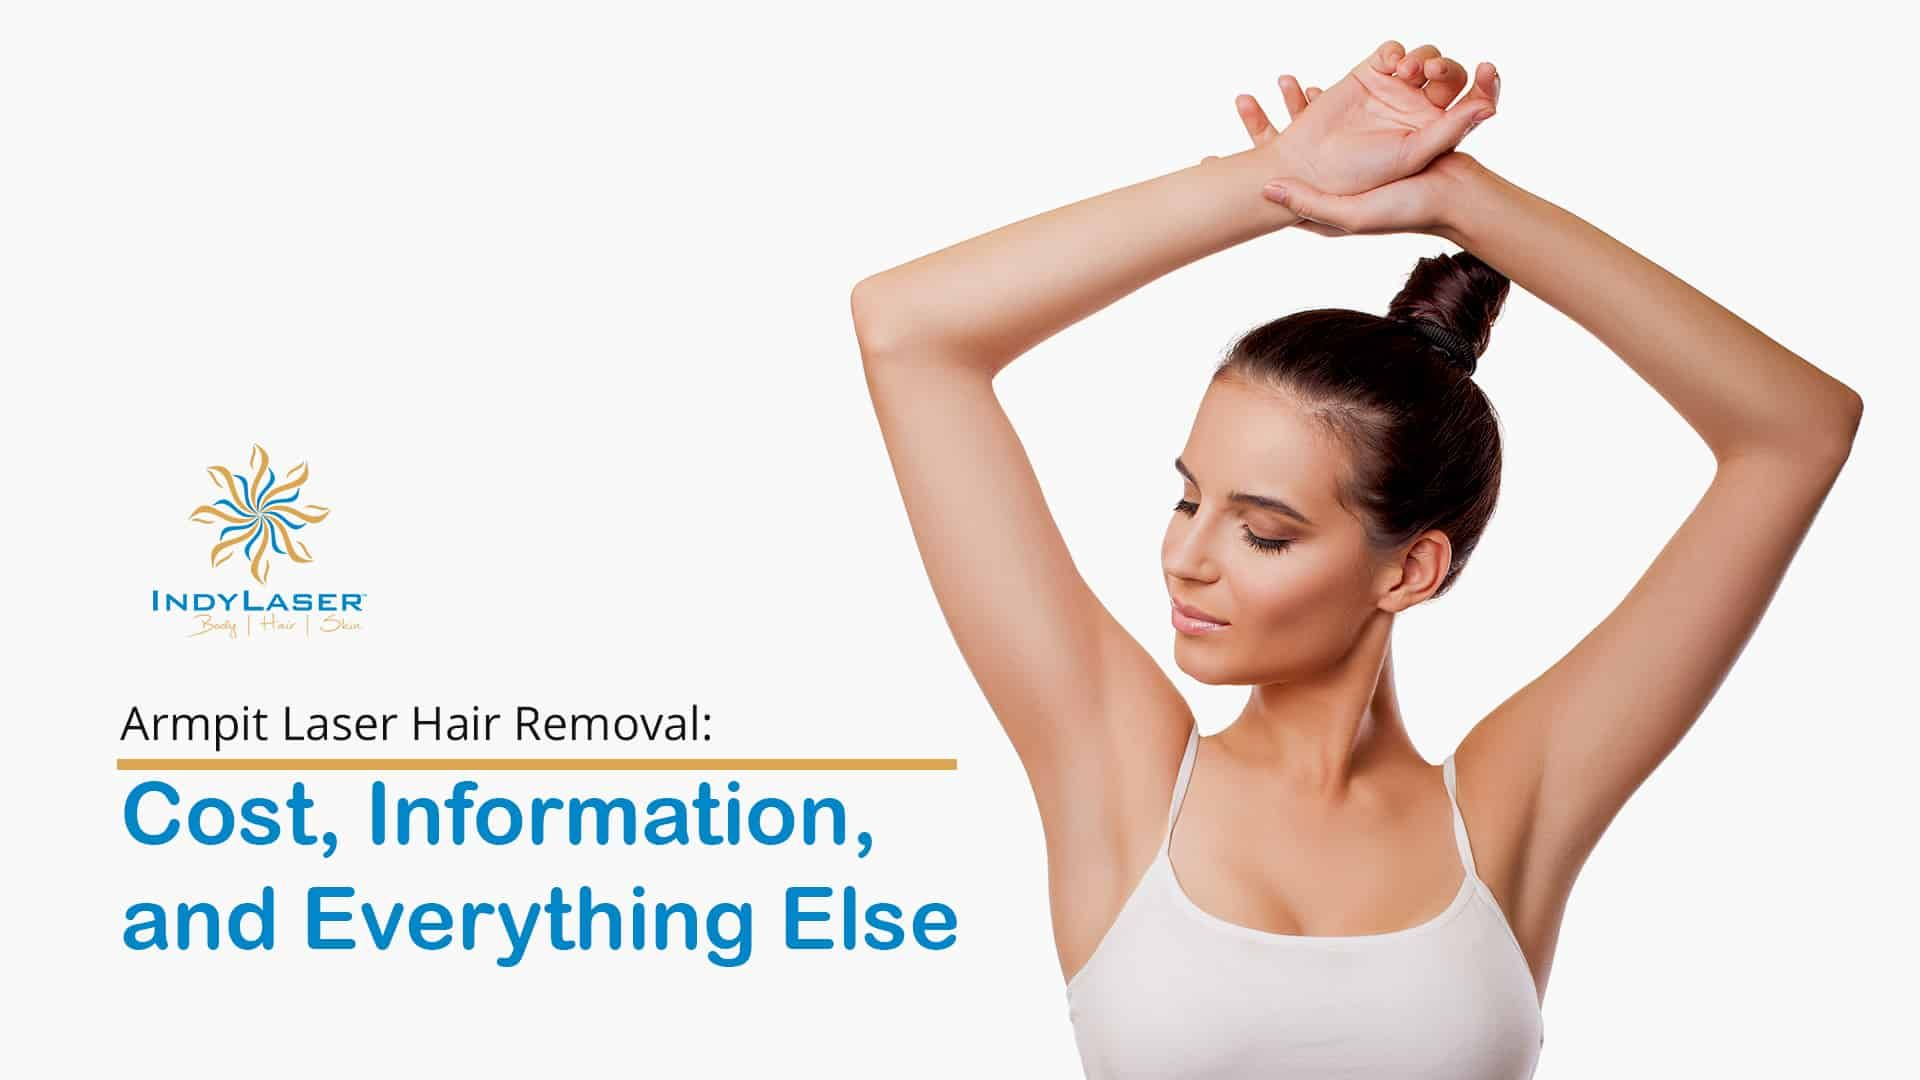 Armpit Laser Hair Removal Cost, Information, and